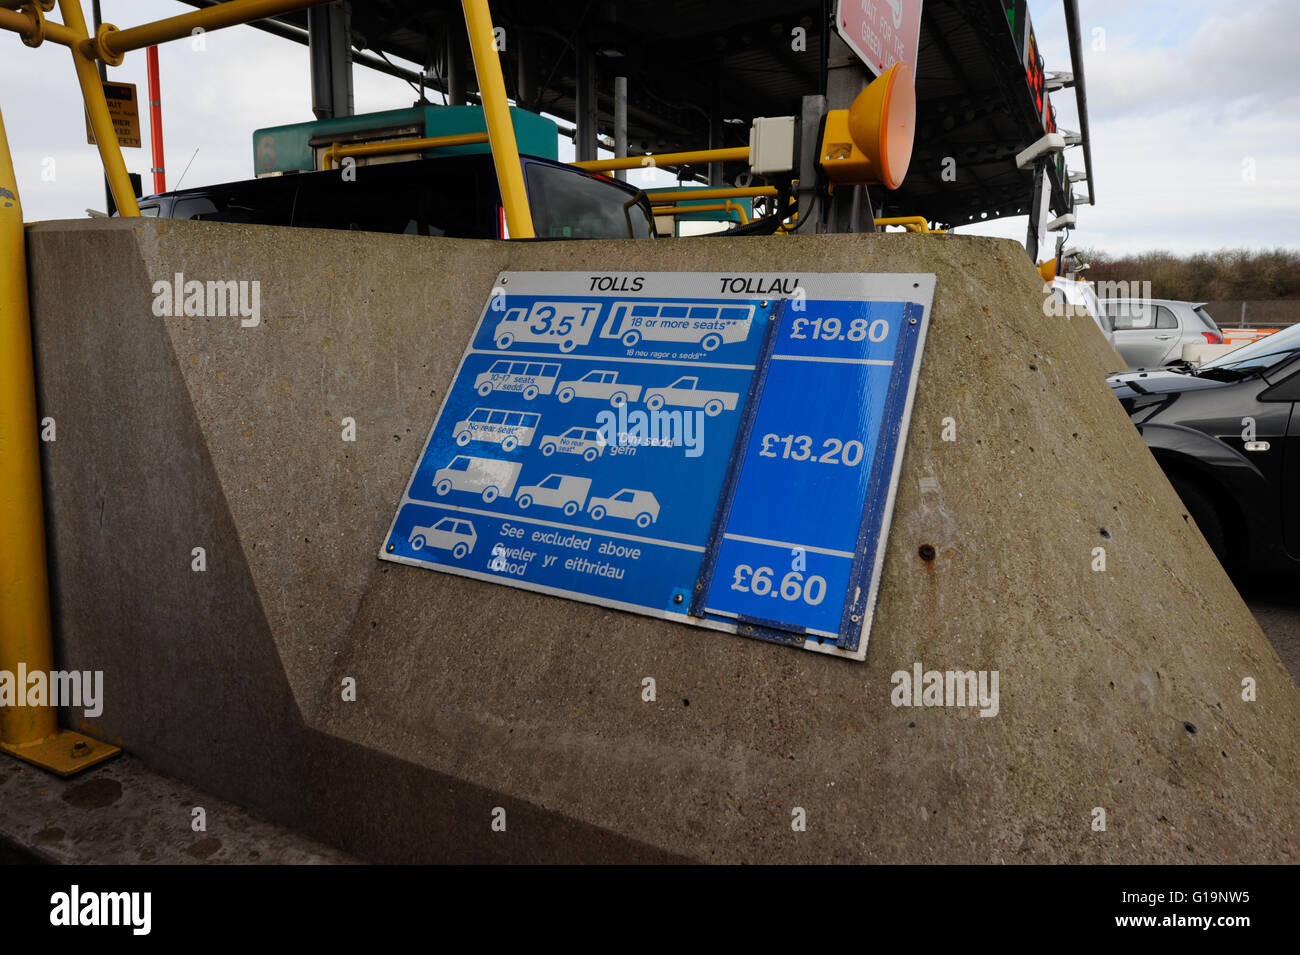 Motorway toll charges sign on display - Stock Image